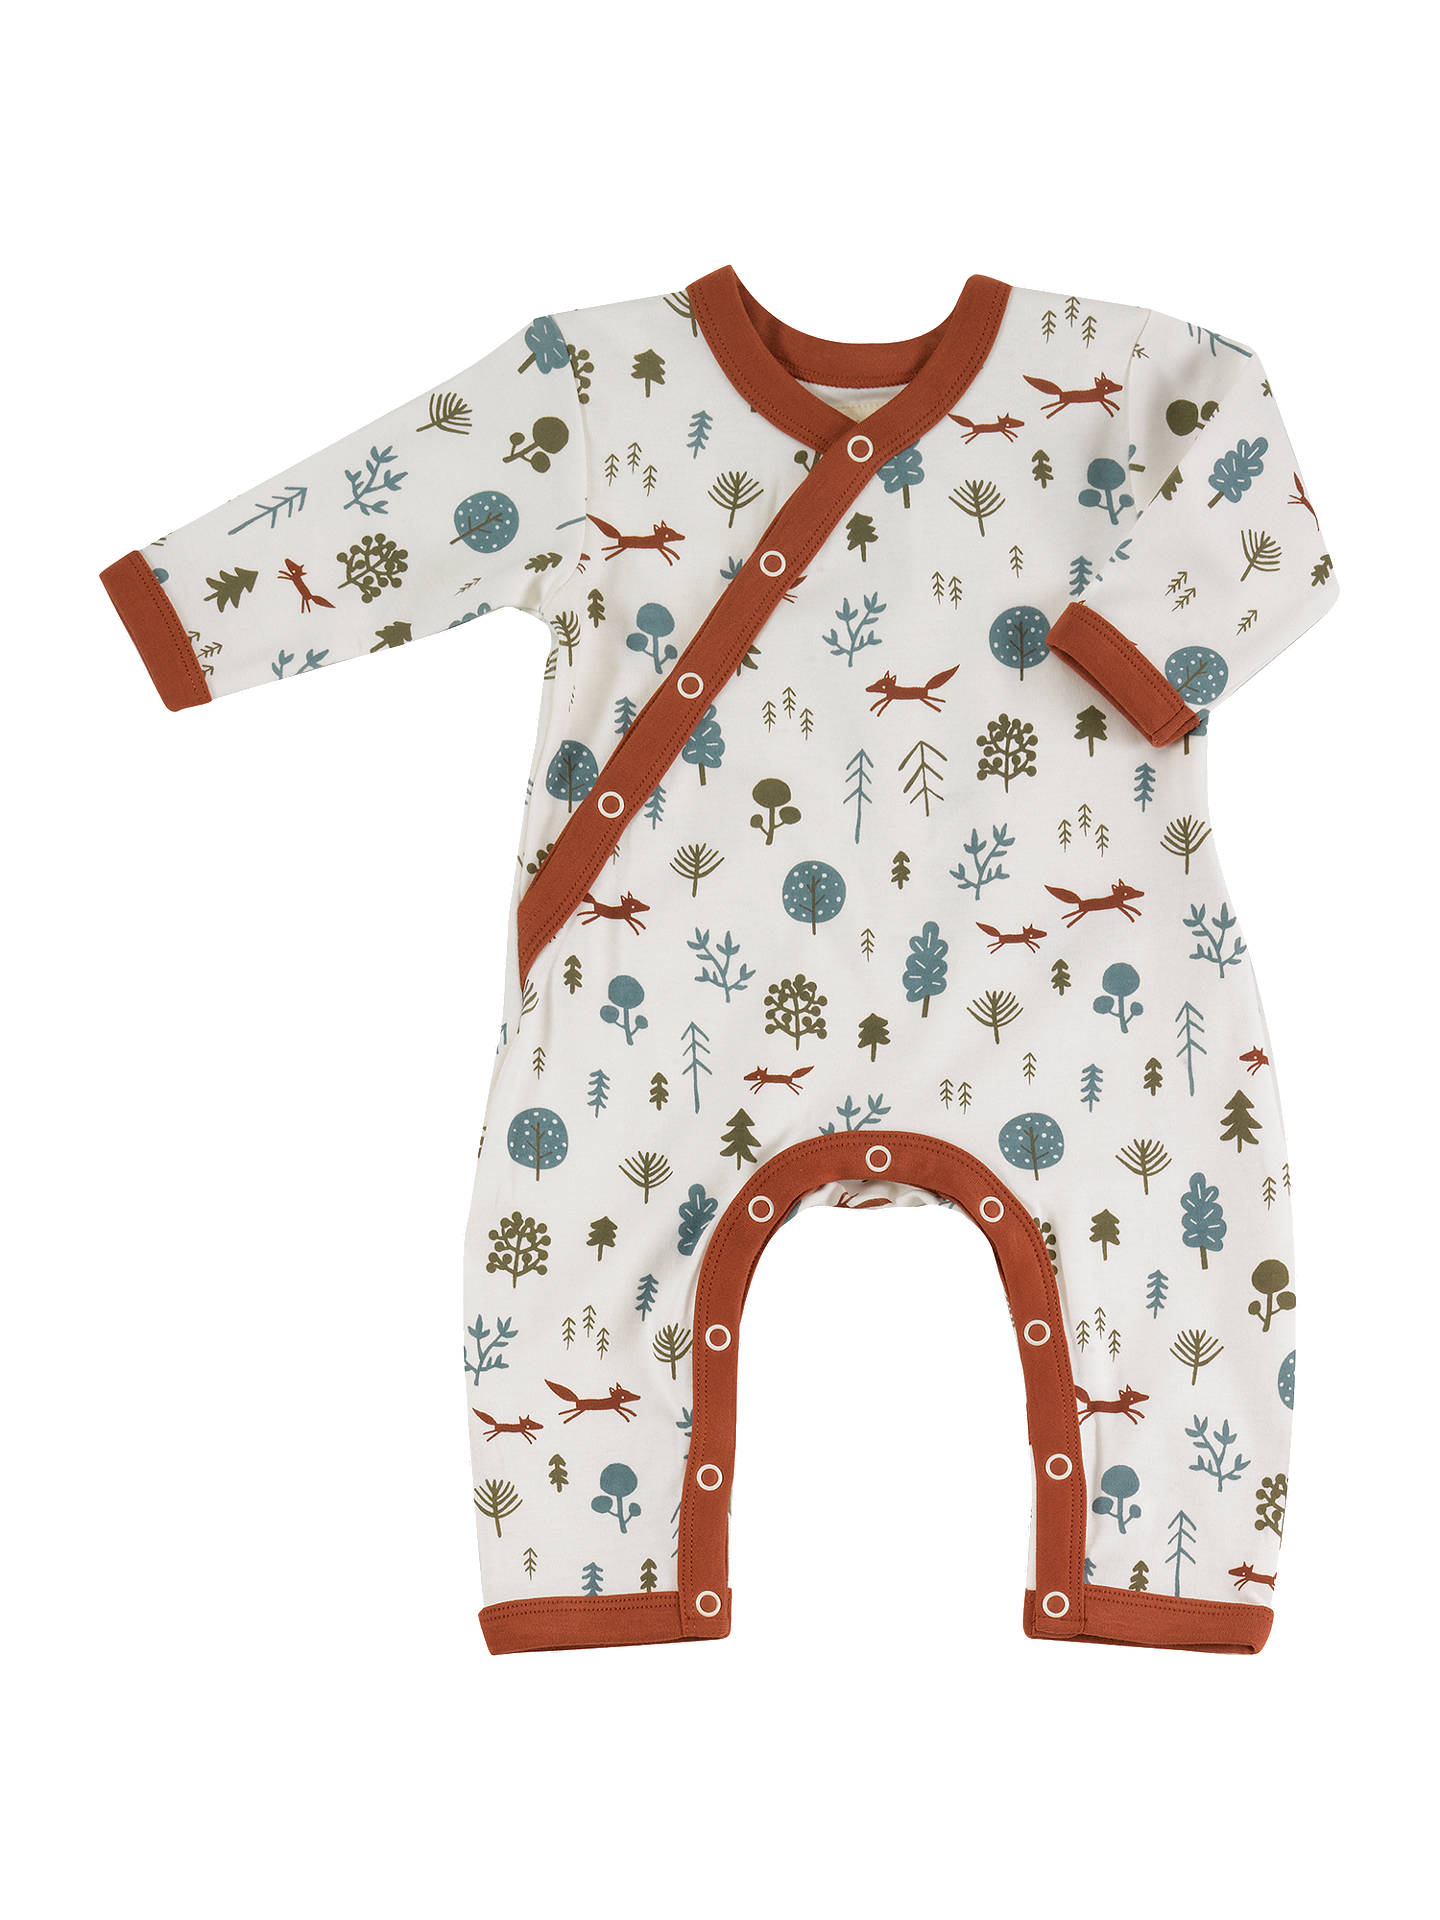 Buy Pigeon Organics Baby GOTS Organic Cotton Nordic Forest Print Romper, Multi, Newborn Online at johnlewis.com